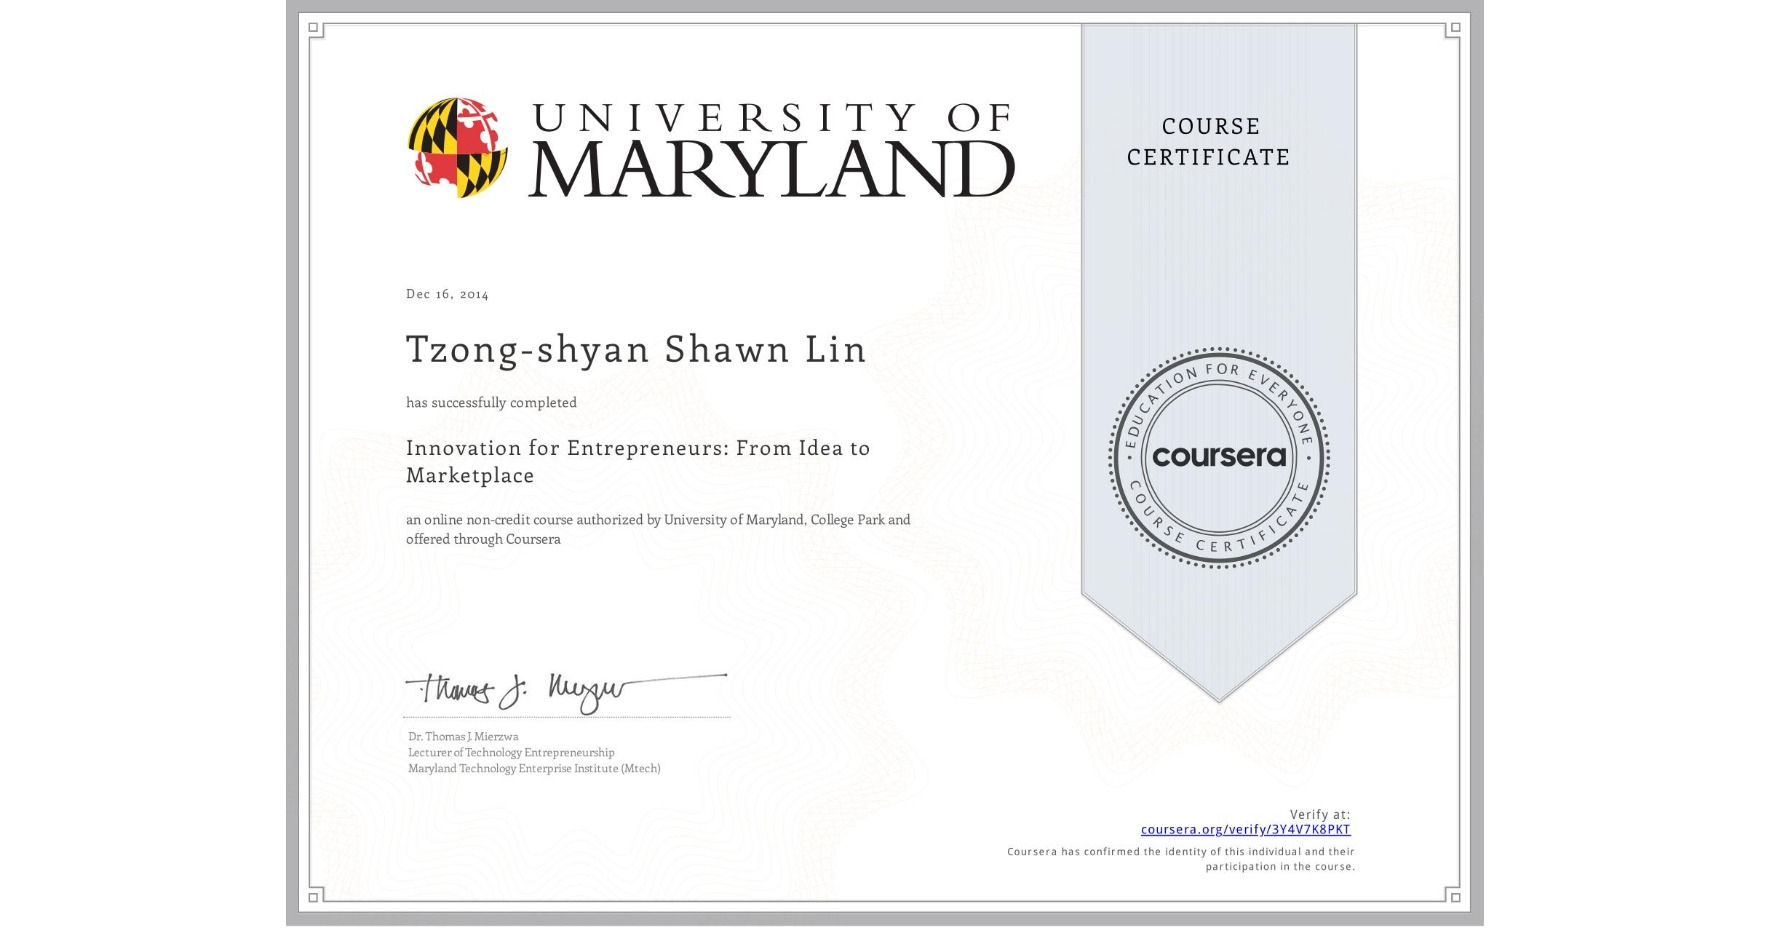 View certificate for Tzong-shyan Shawn Lin, Innovation for Entrepreneurs: From Idea to Marketplace, an online non-credit course authorized by University of Maryland, College Park and offered through Coursera